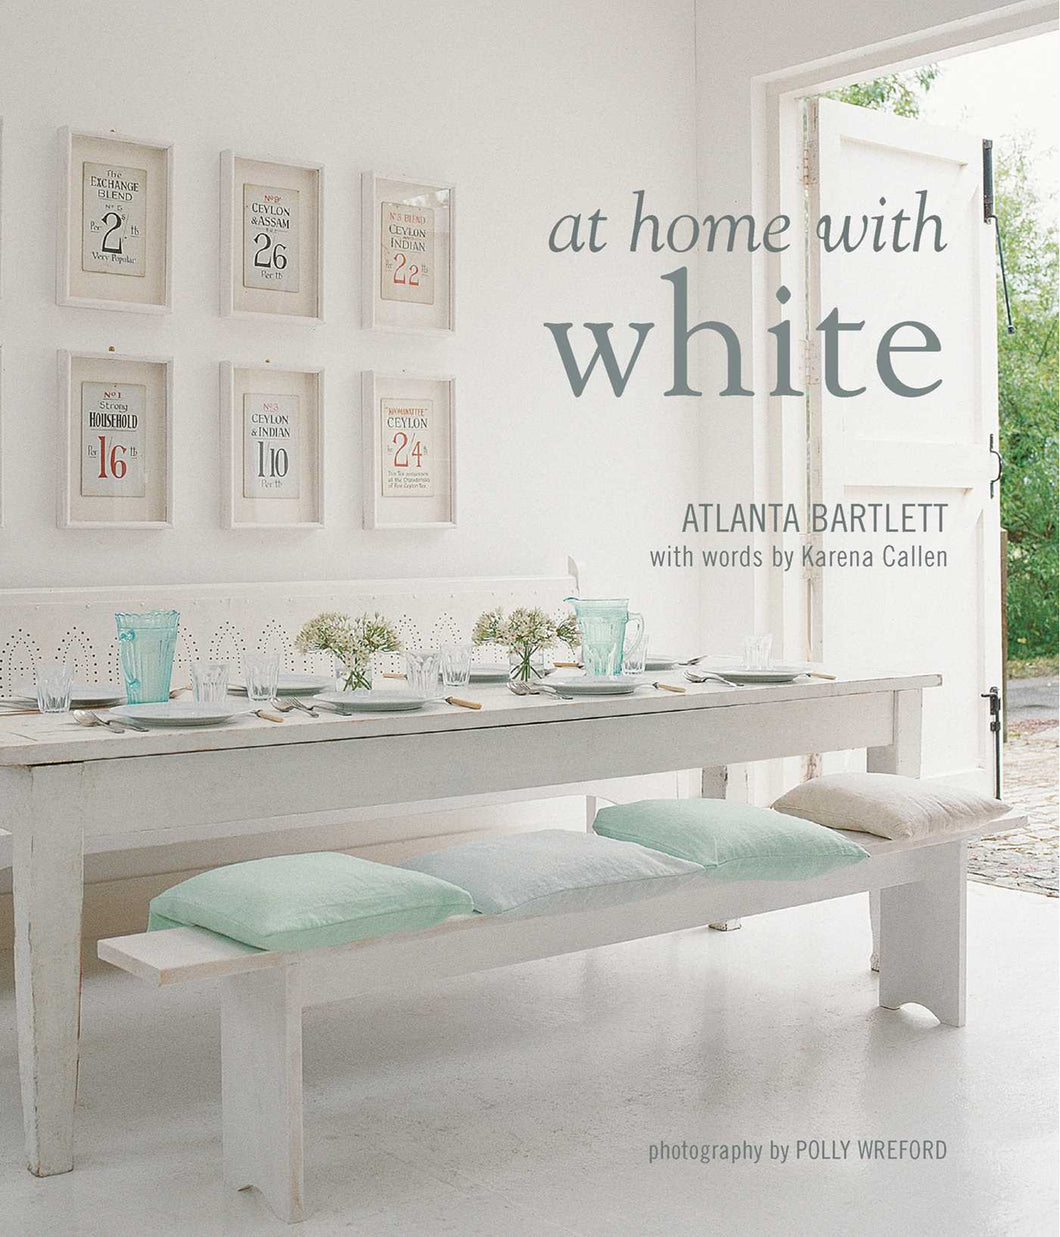 At Home with White - Atlanta Bartlett